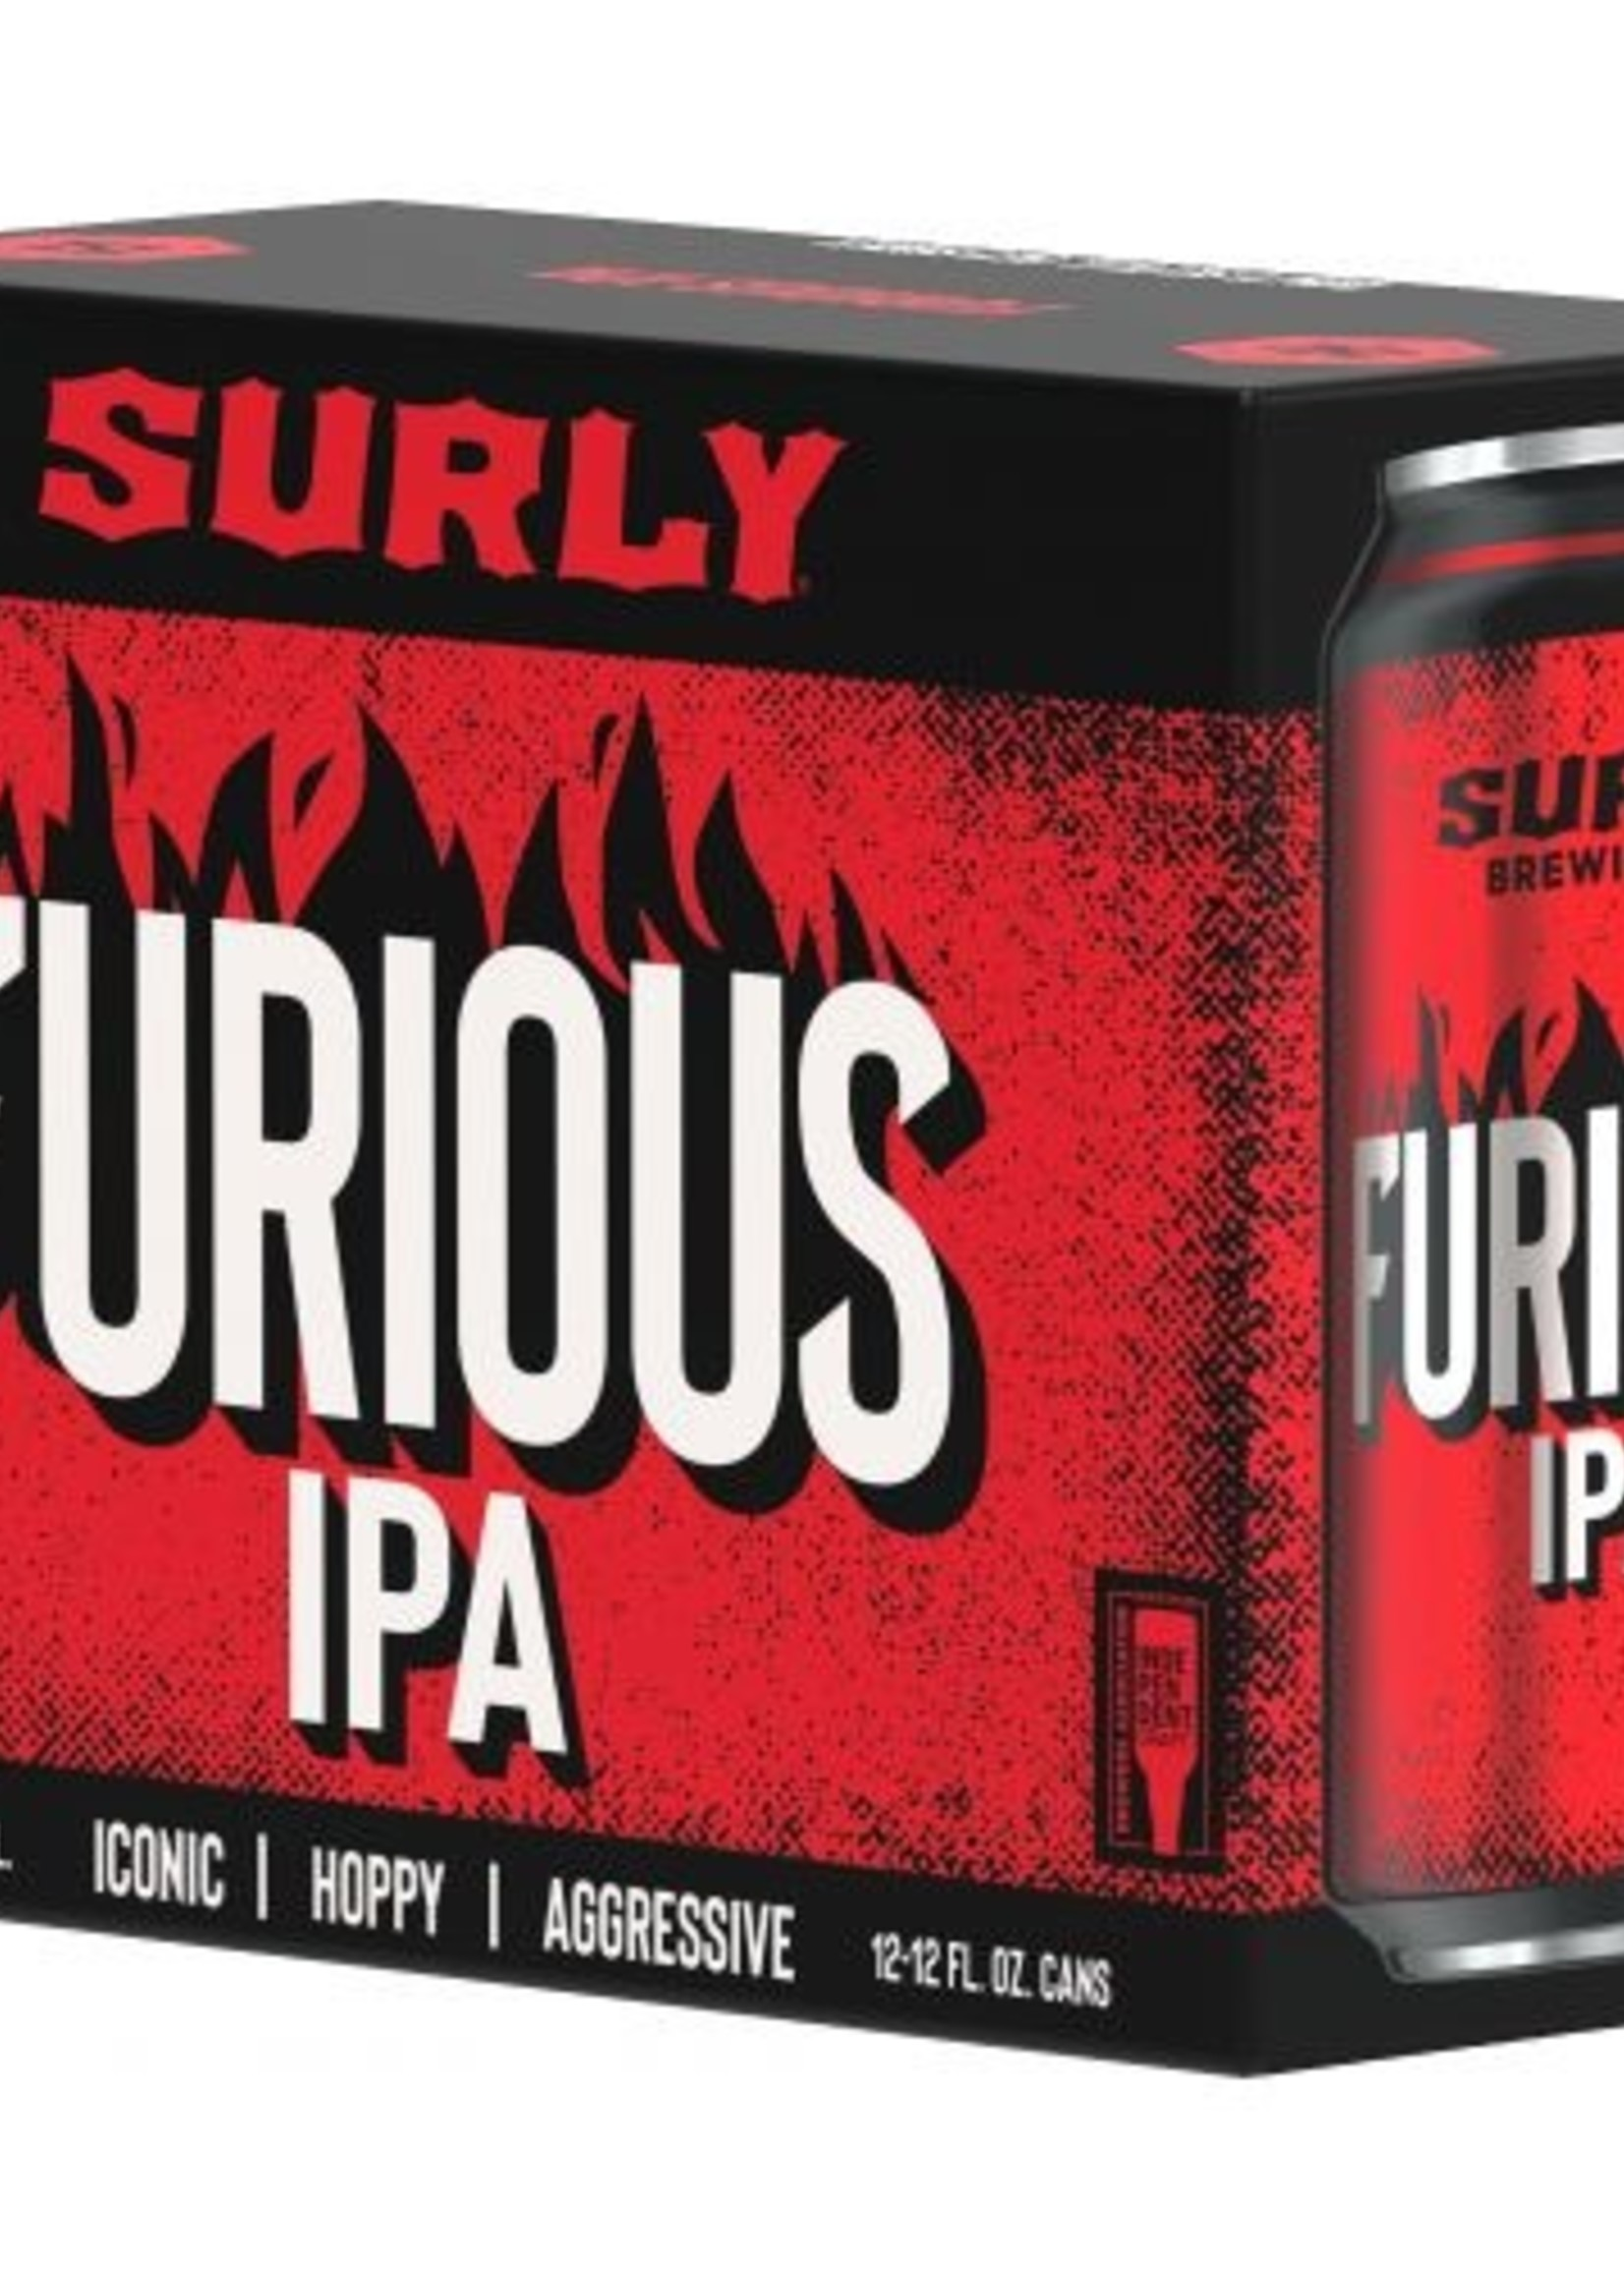 Surly Furious 12x12oz Cans